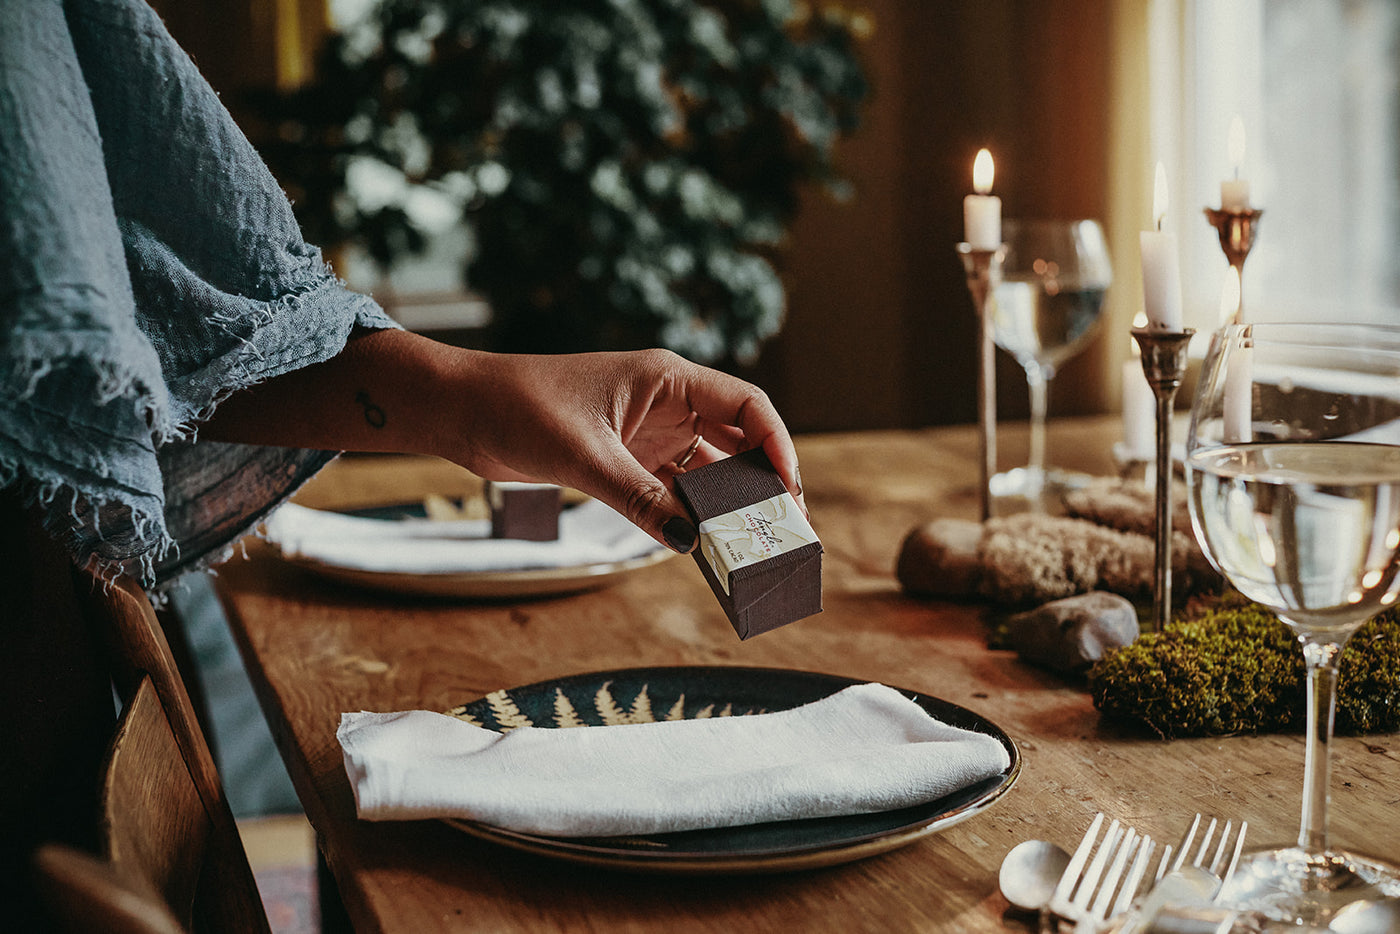 A Black woman's hand and arm holding a small box of Tangle Chocolate THINS, placing the box on a napkin as part of a beautiful table setting with candles, wood table, moss centerpiece.